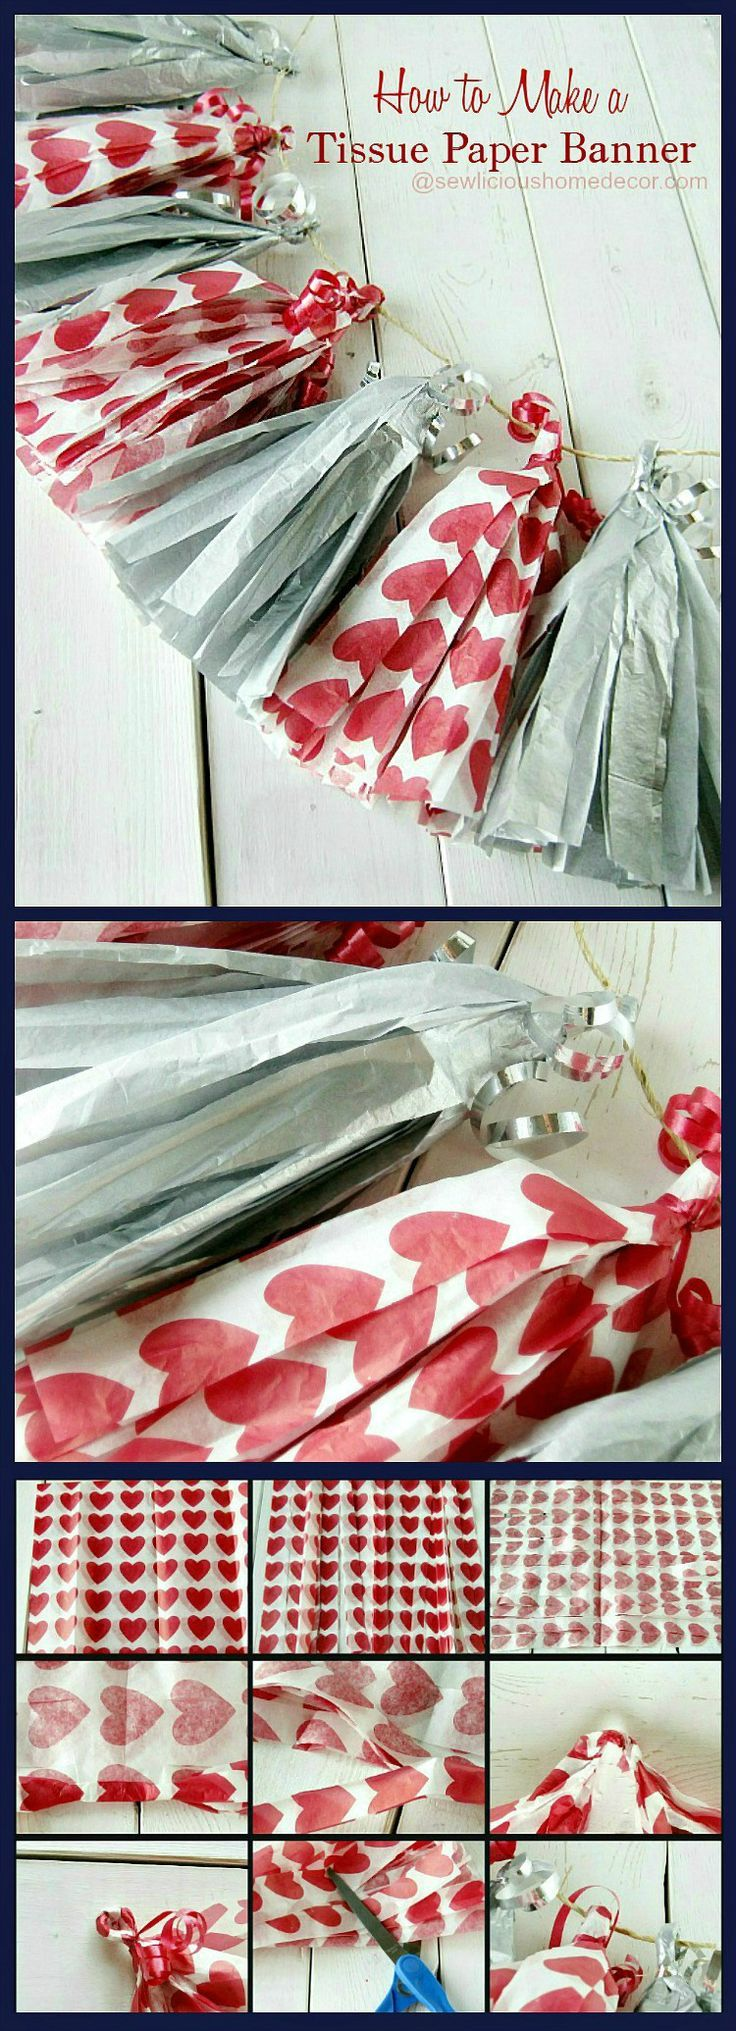 How To Make Tissue Paper Party Banners. Quick and easy tutorial!